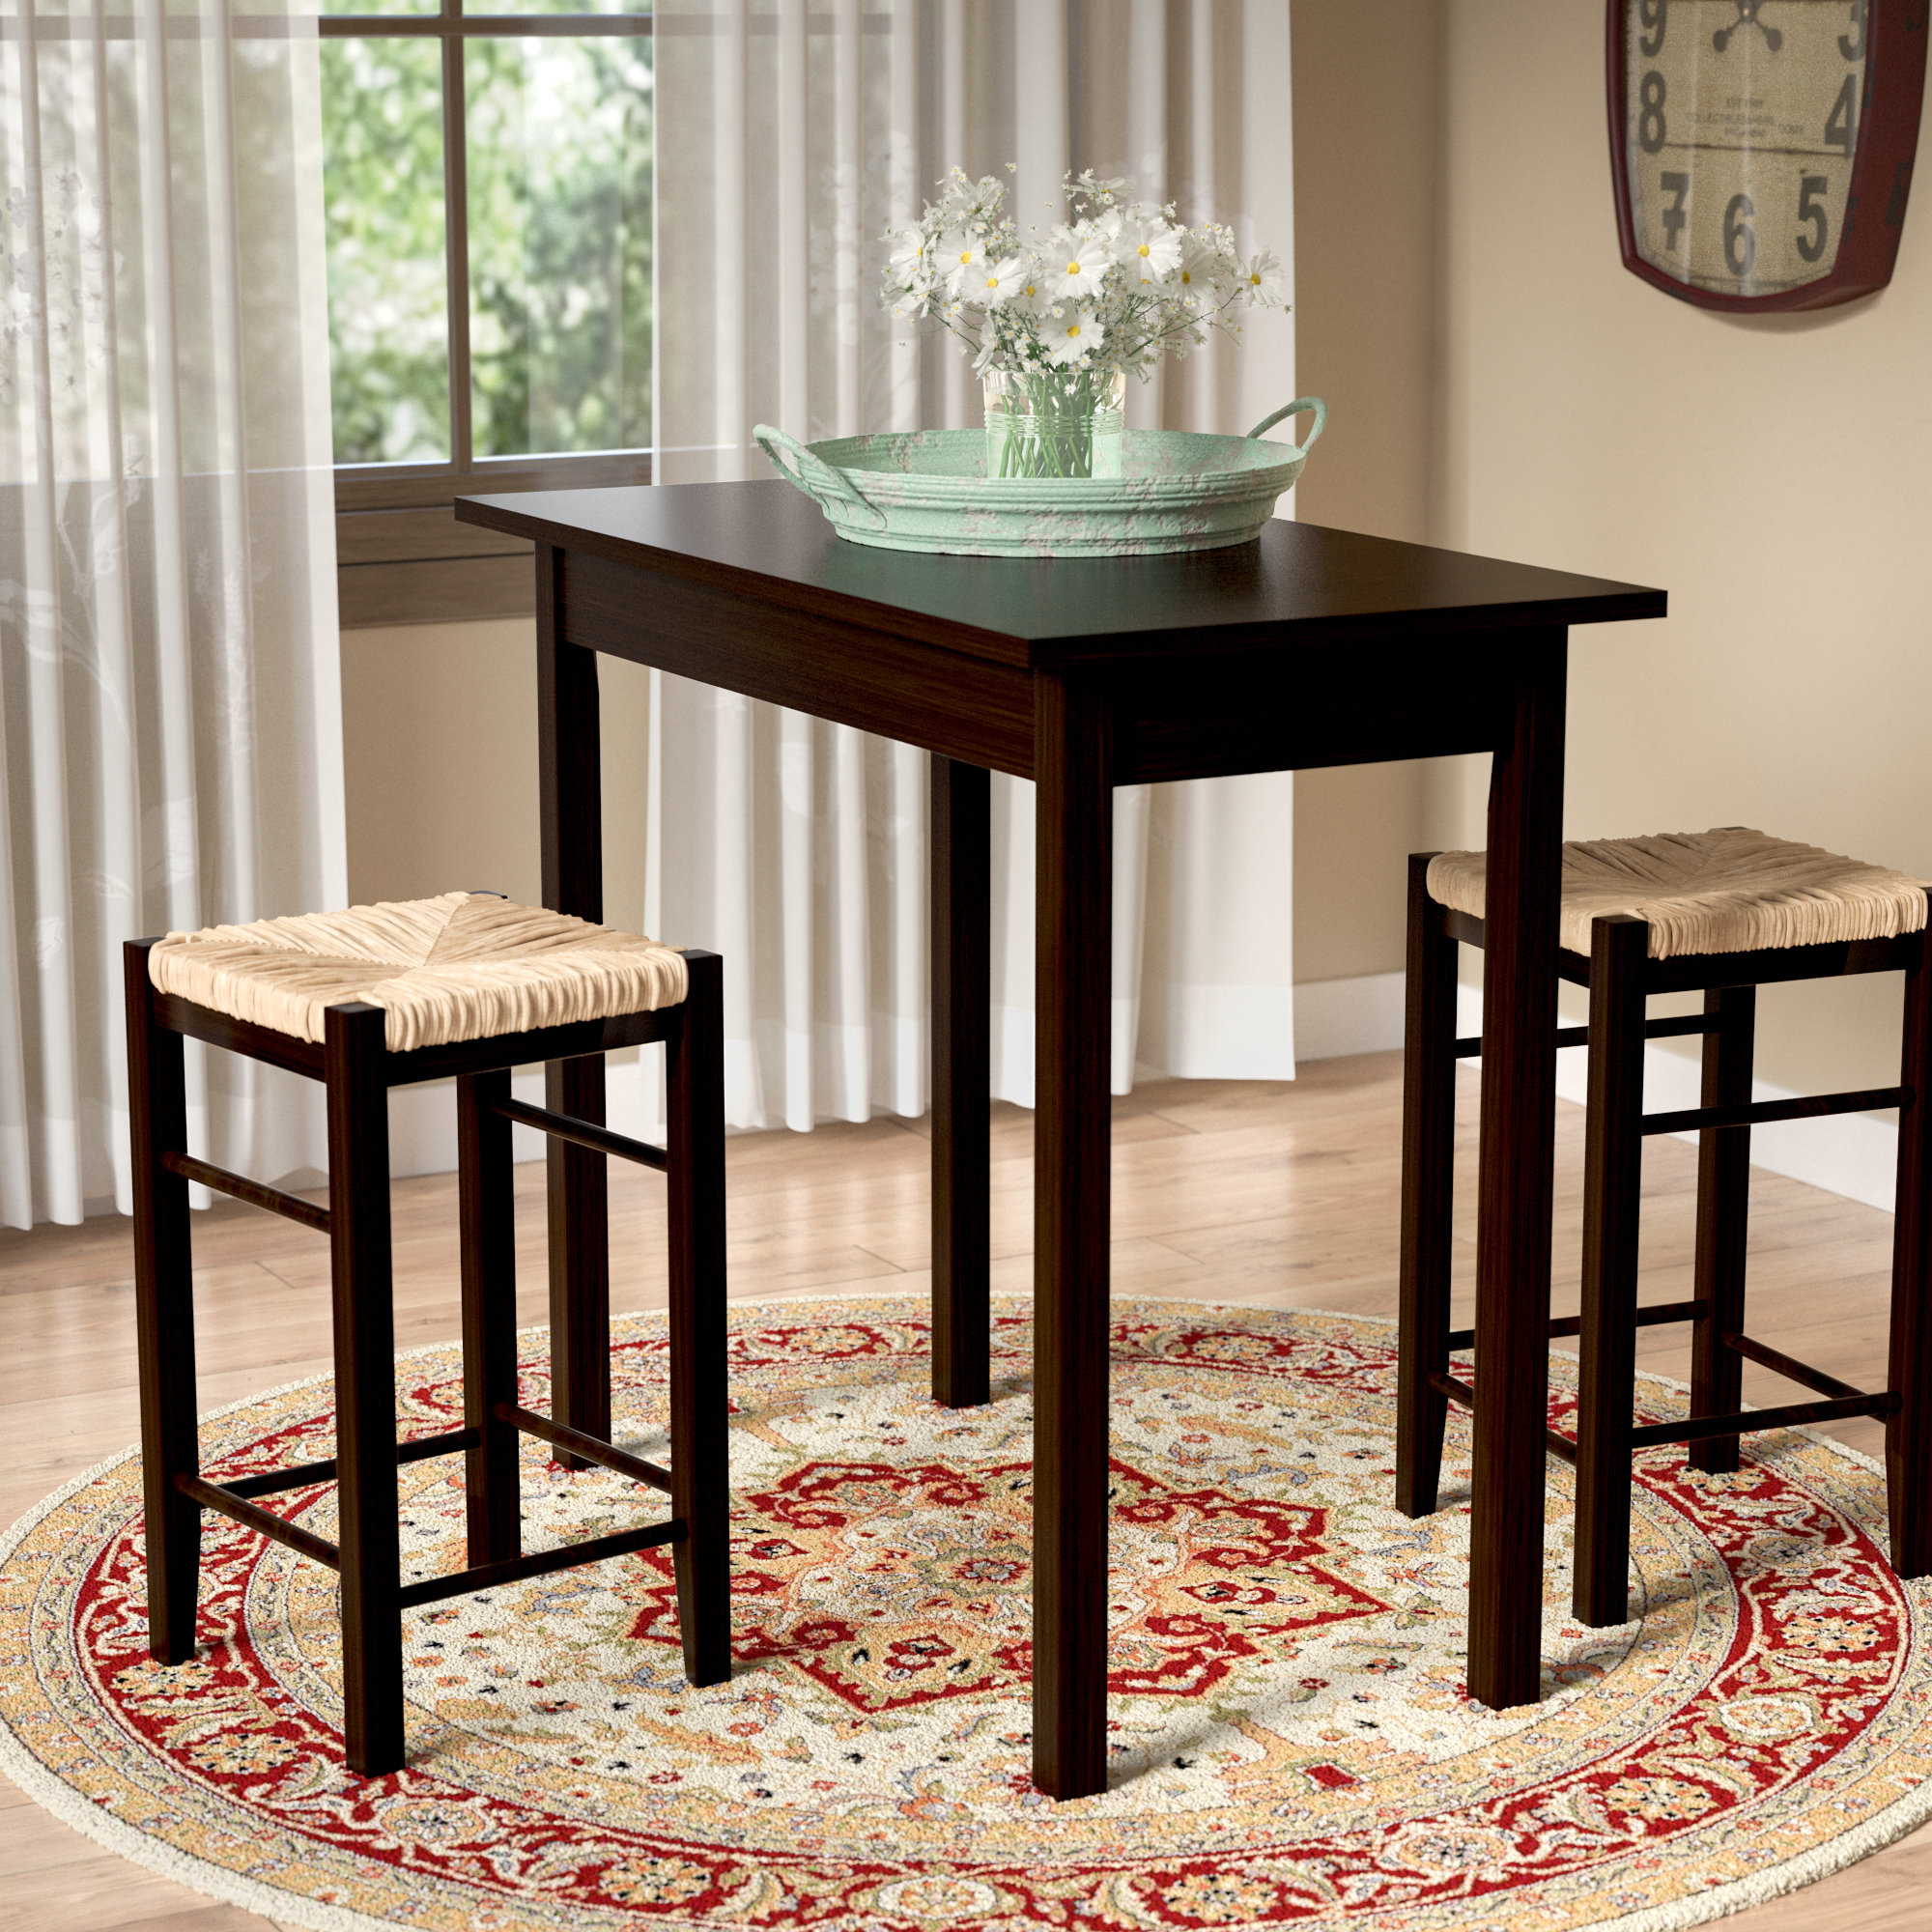 Tenney 3 Piece Counter Height Dining Set Pertaining To Current Sheetz 3 Piece Counter Height Dining Sets (View 5 of 20)